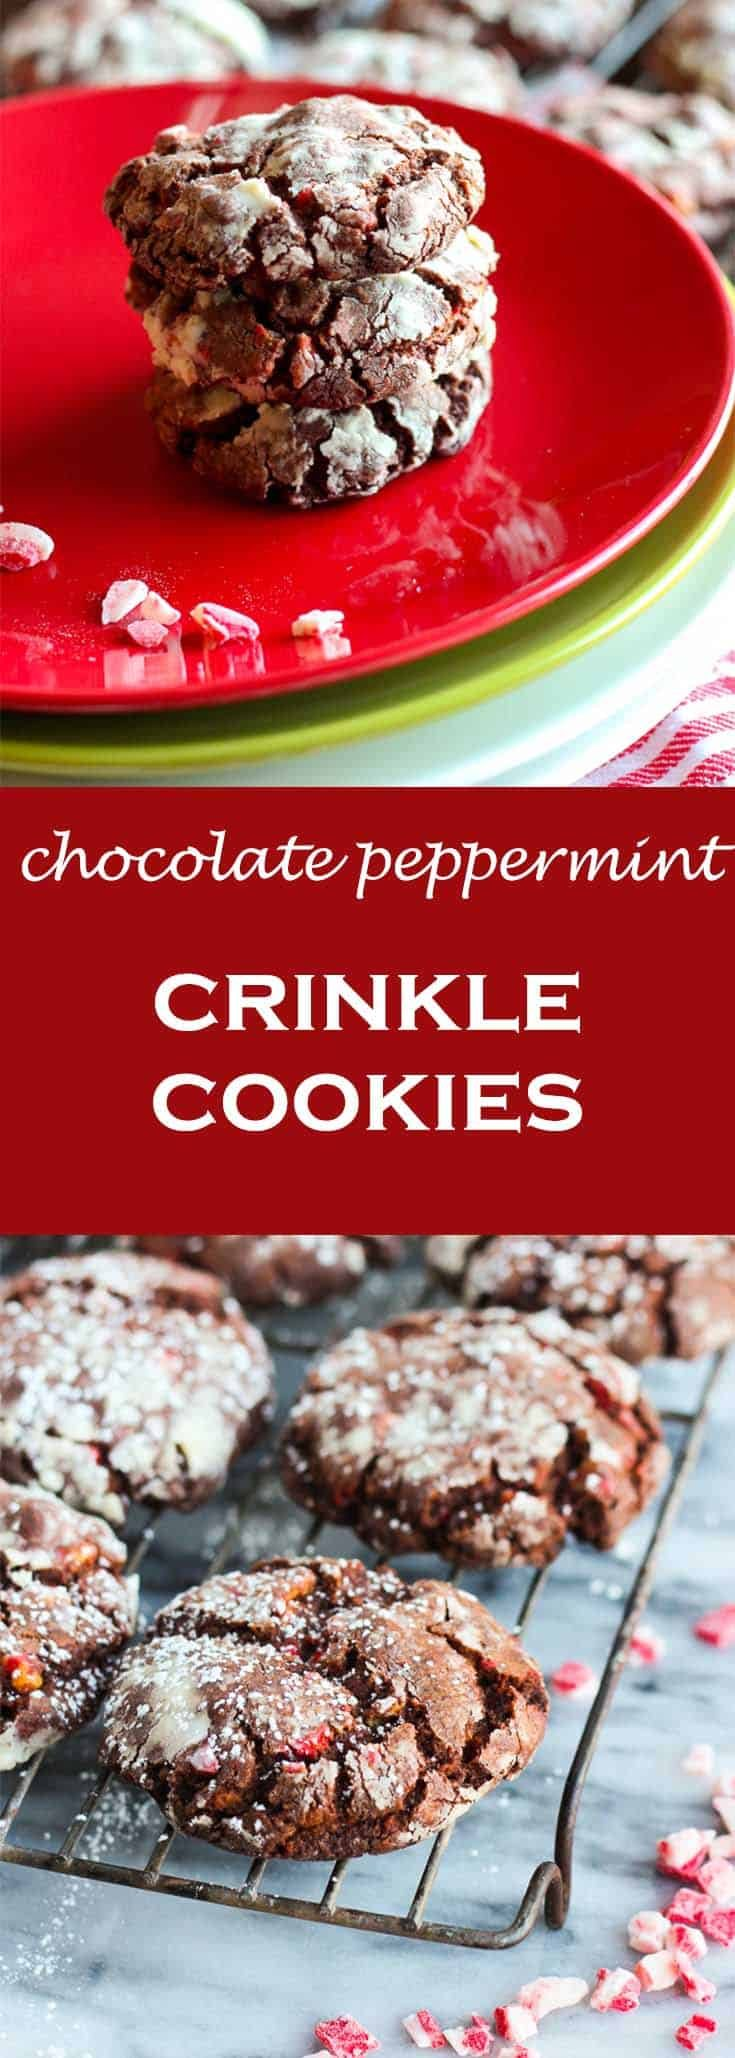 Chocolate peppermint crinkle cookies are festive and holiday-party ready. #abakershouse #peppermintcookies #chocolatecookies #cookieexchange #cookierecipe #Christmascookie #holidaybaking